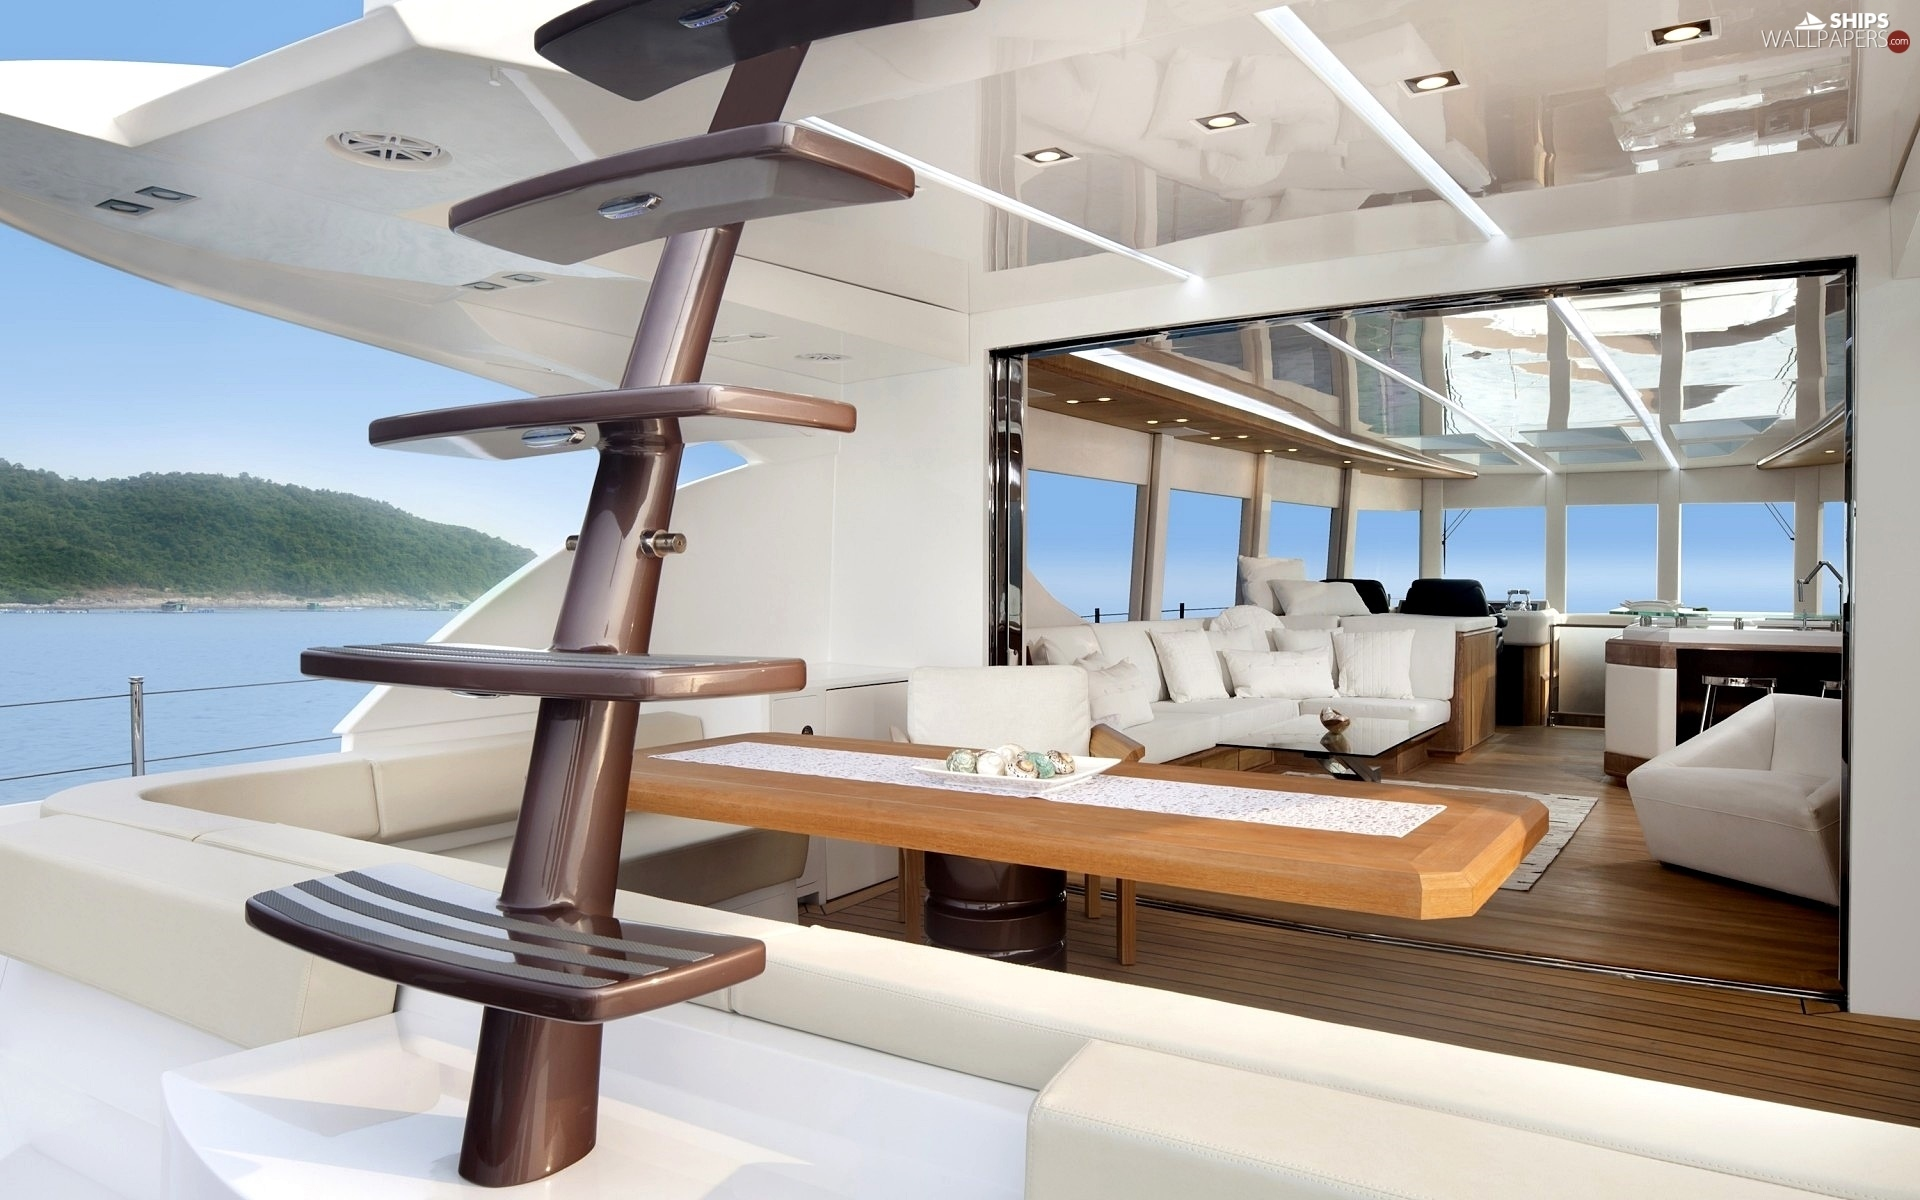 http://wecarlovers.wehomeowners.com/wp-content/uploads/2016/07/Yacht-Photo_001.jpg